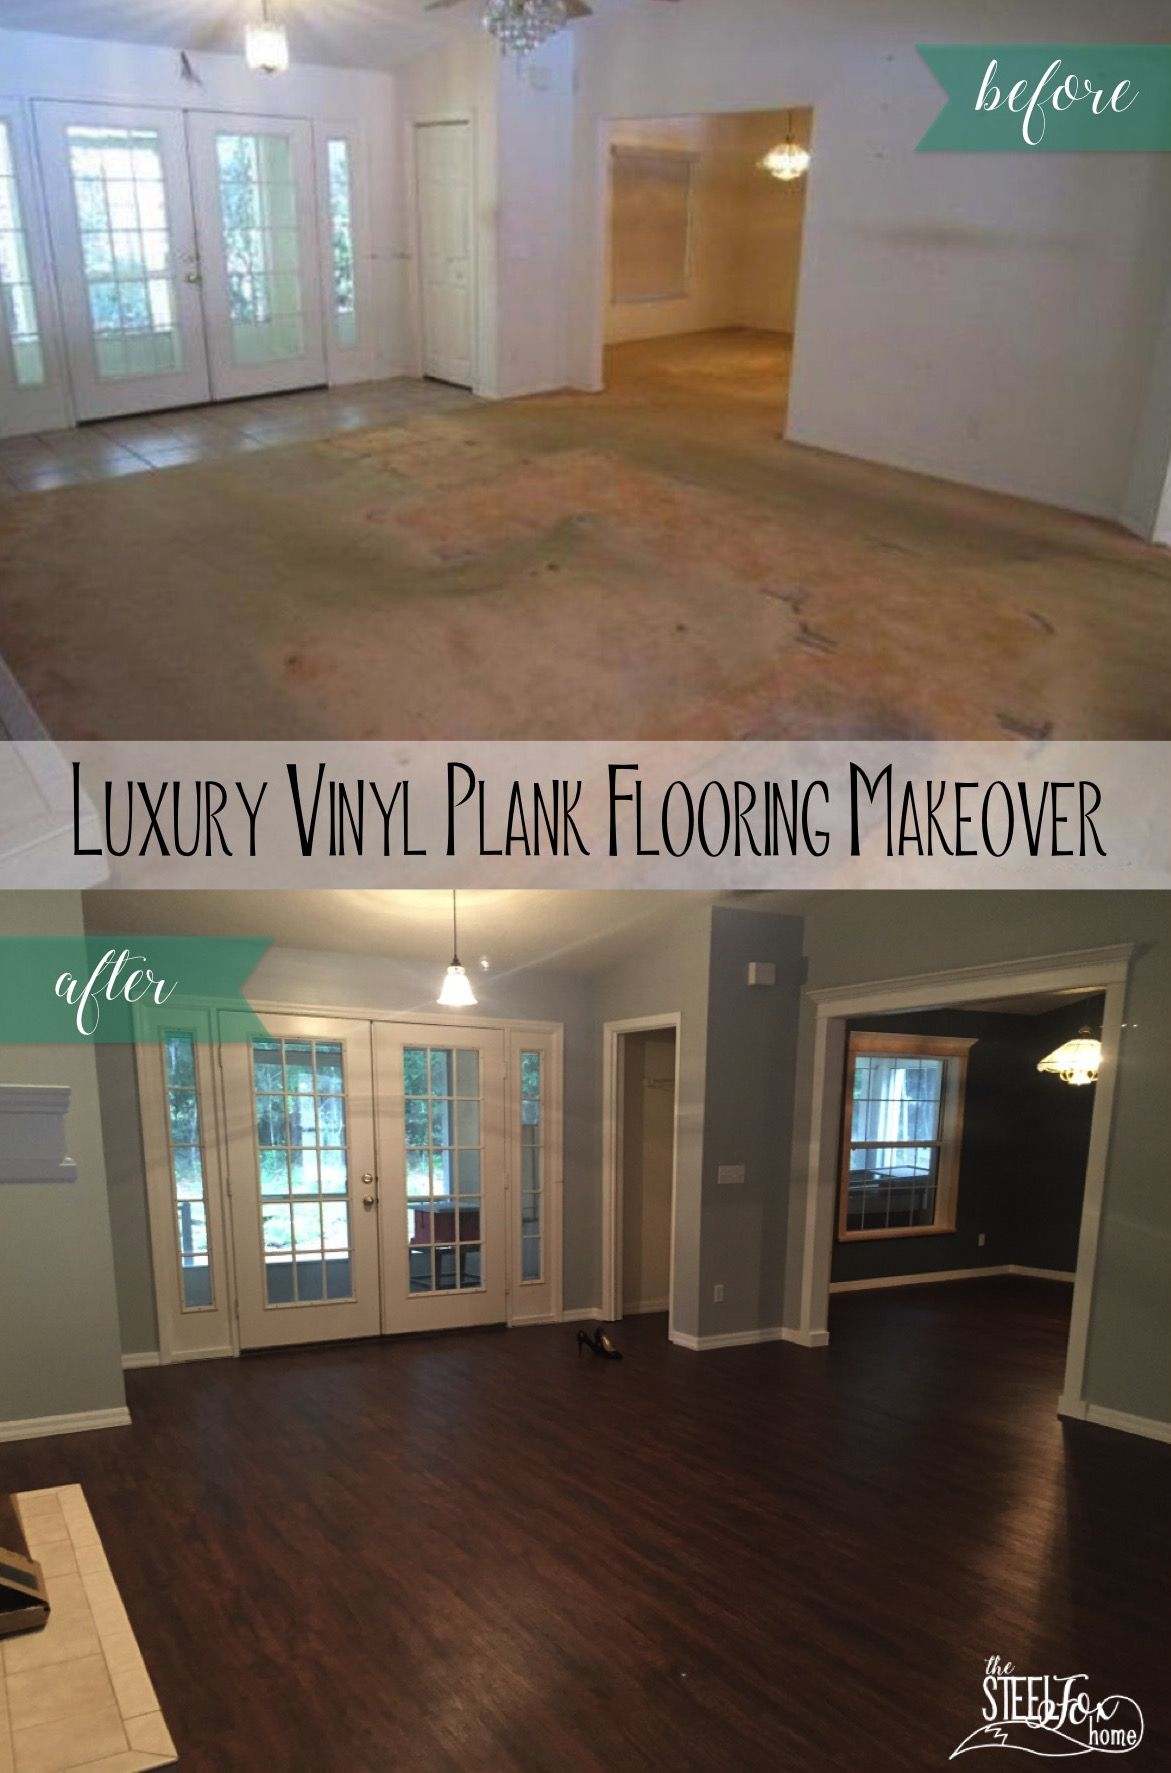 Luxury Vinyl Plank Wood Flooring Whole House Makeover Why We Choose Vinyl Pros And Cons And Our Honest R Luxury Vinyl Plank Vinyl Plank Vinyl Plank Flooring